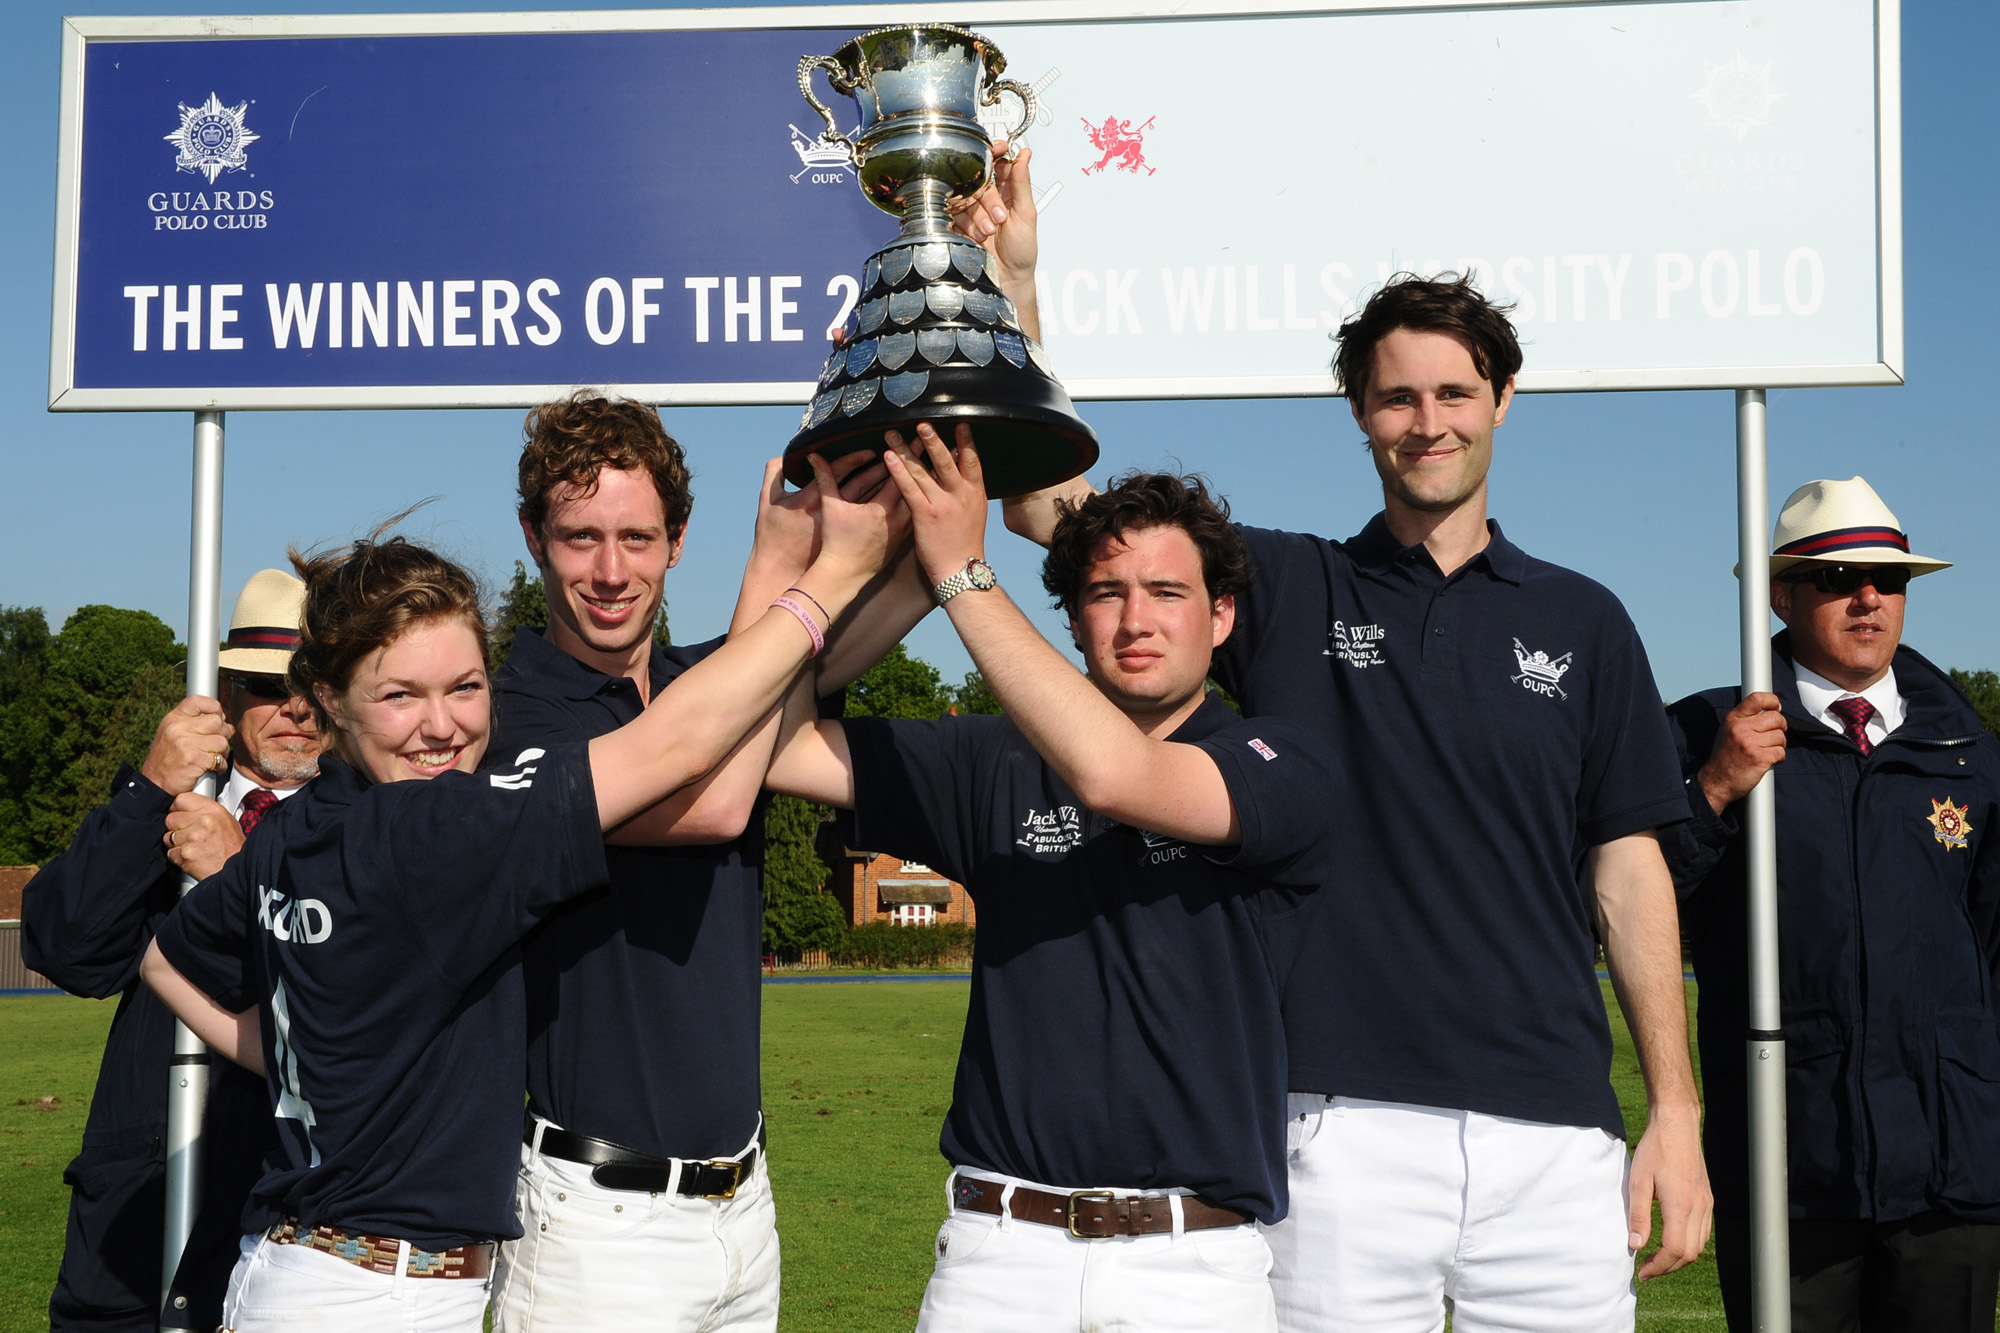 Jack Wills 2013, Guards Polo Club, 08/08/2013